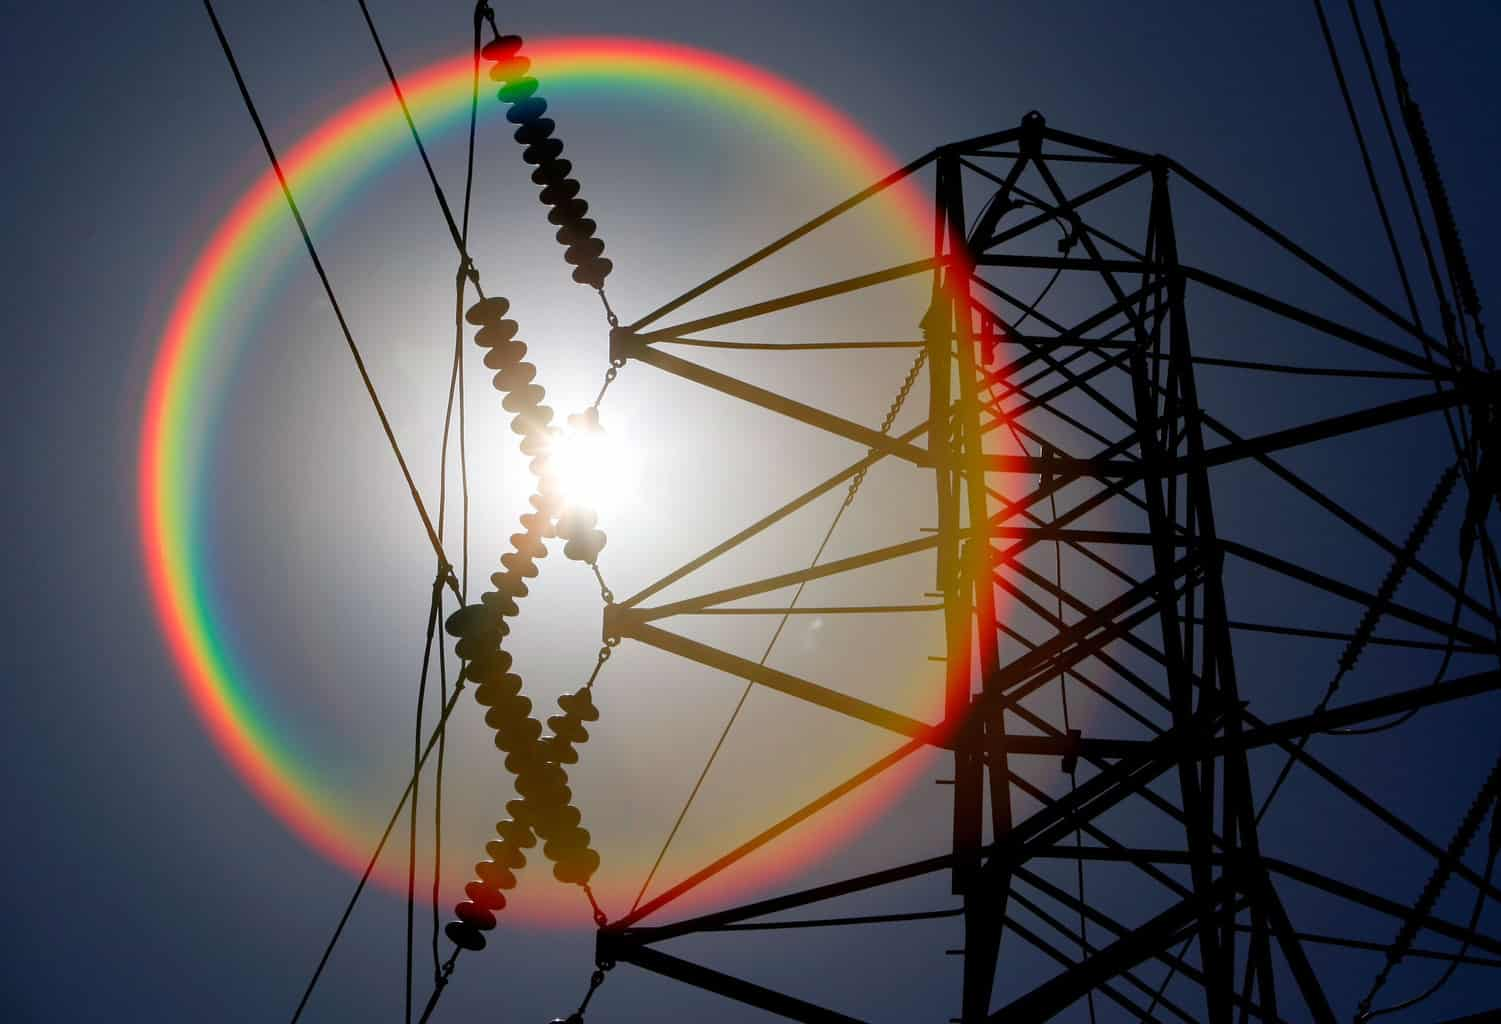 California Power Grid Strained By Heat Wave